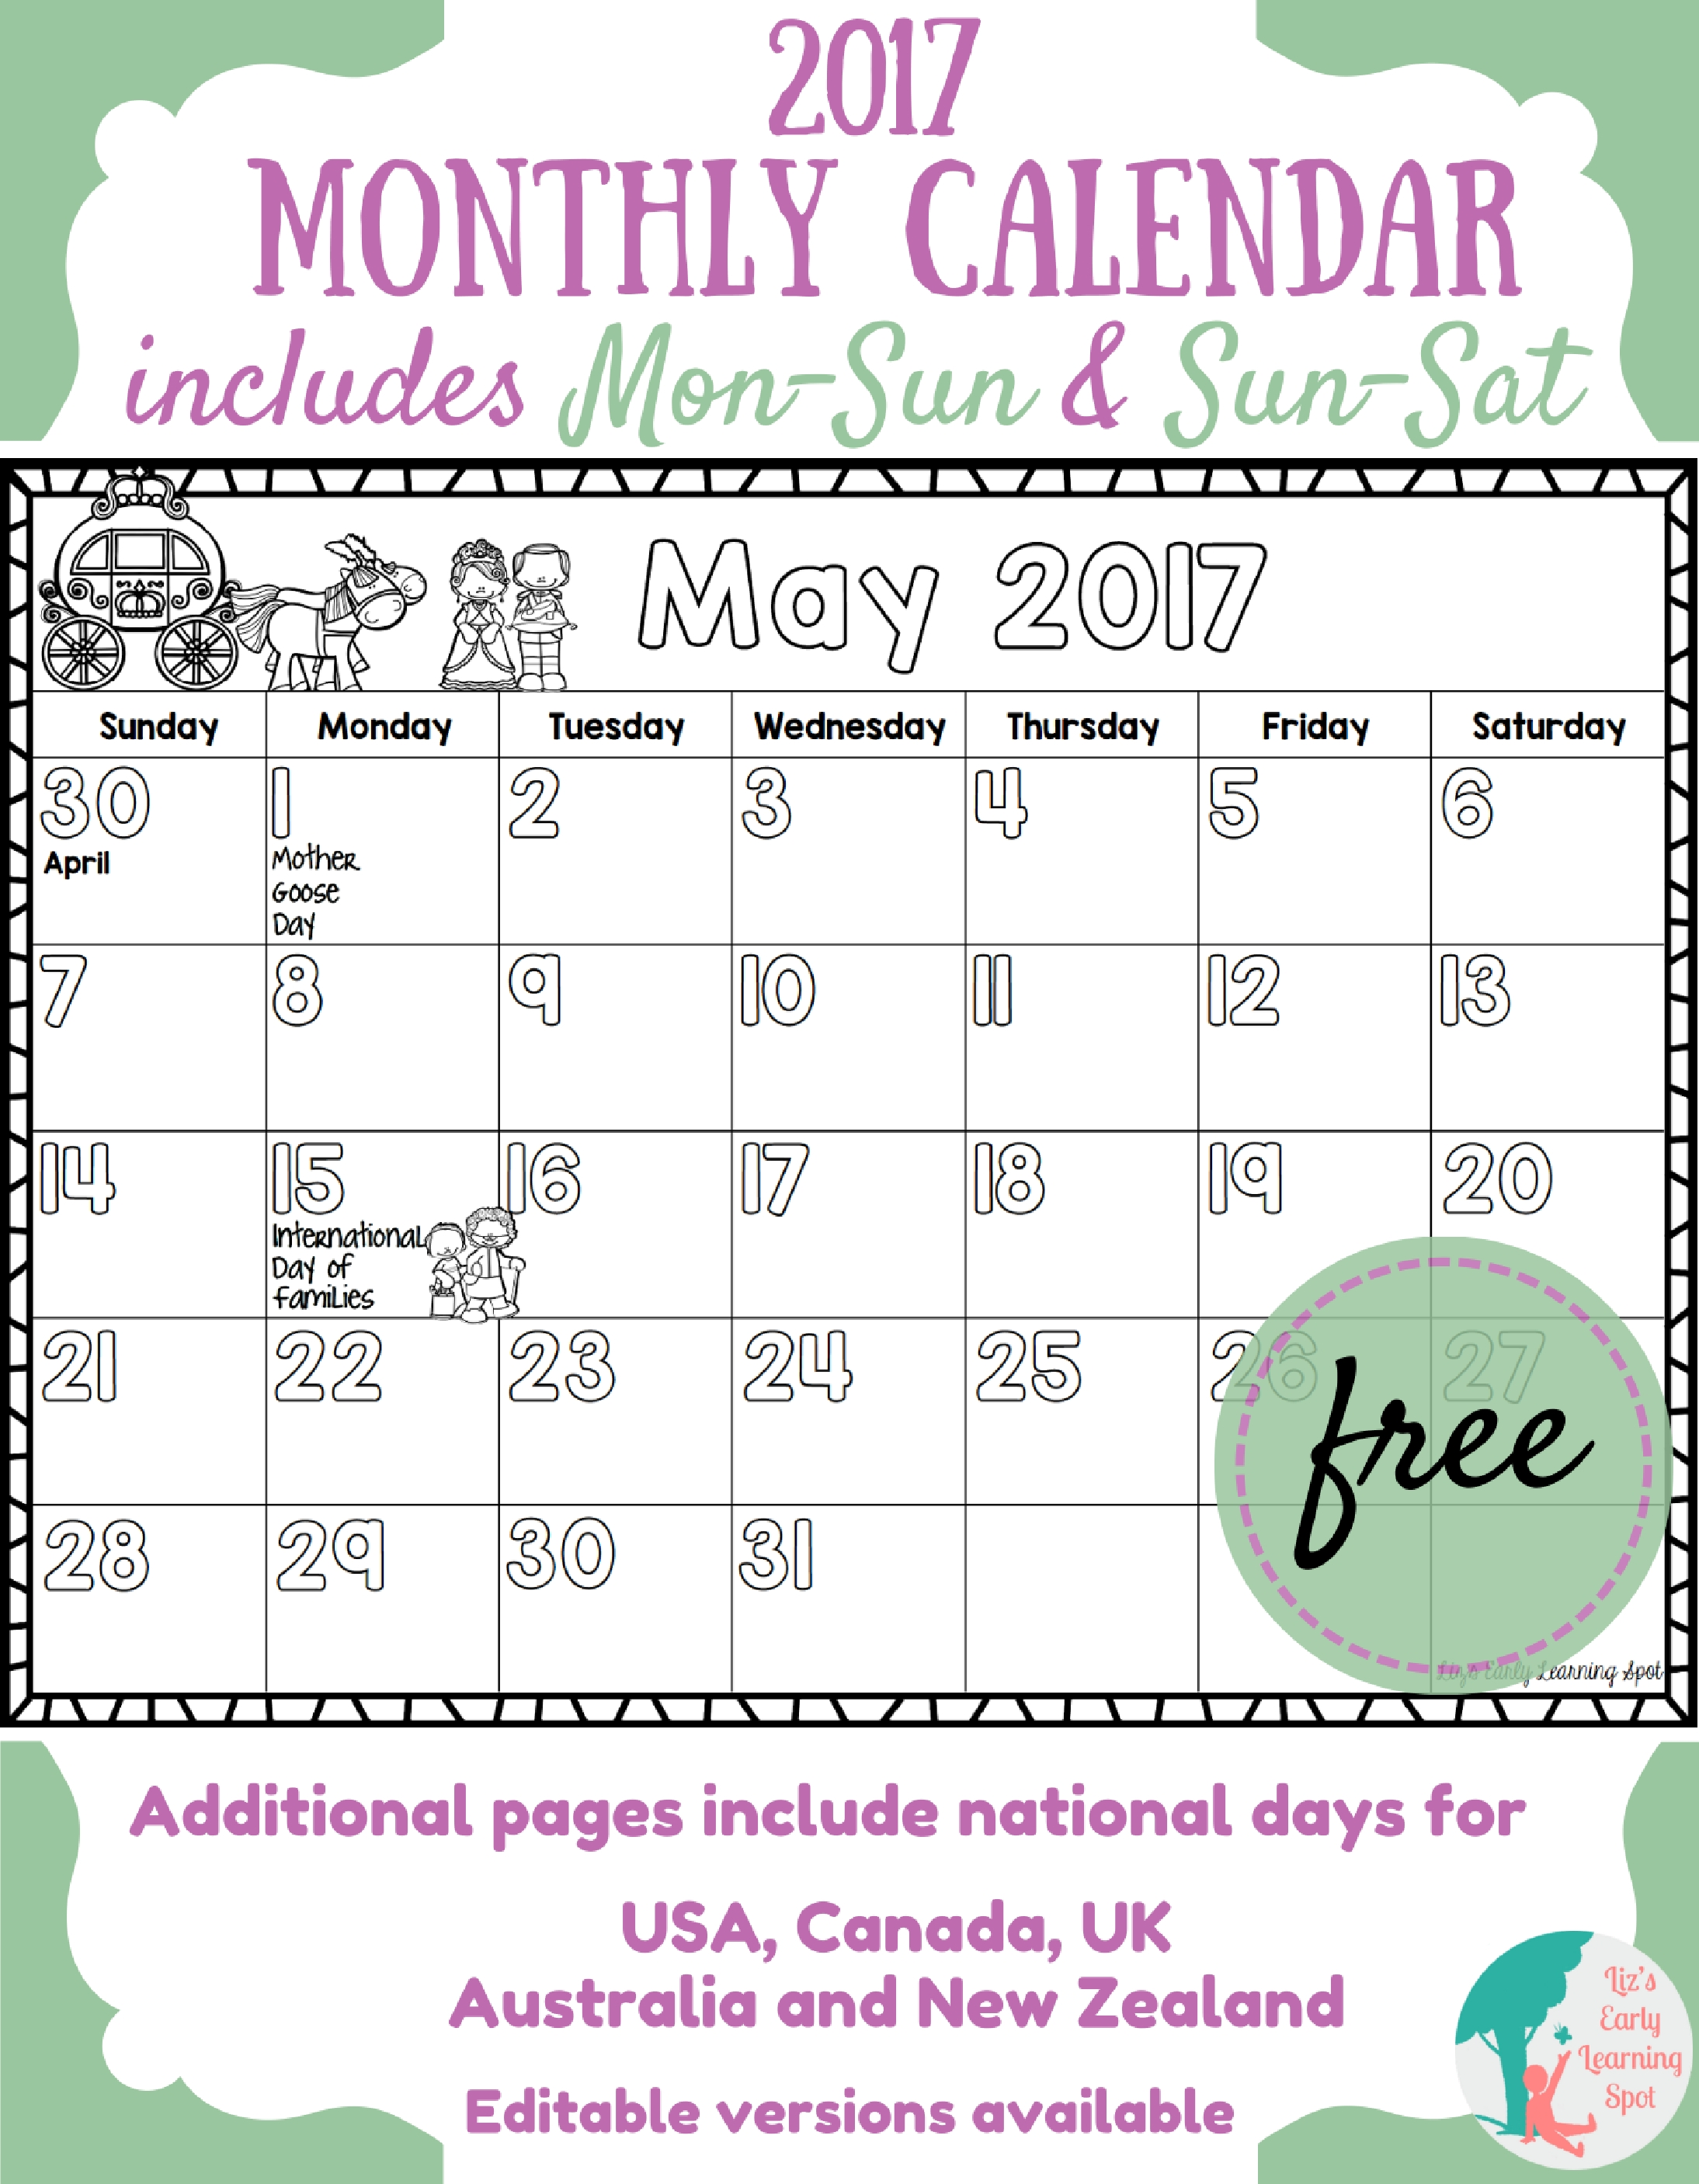 June Calendar Picture Ideas : Free monthly calendar for kids liz s early learning